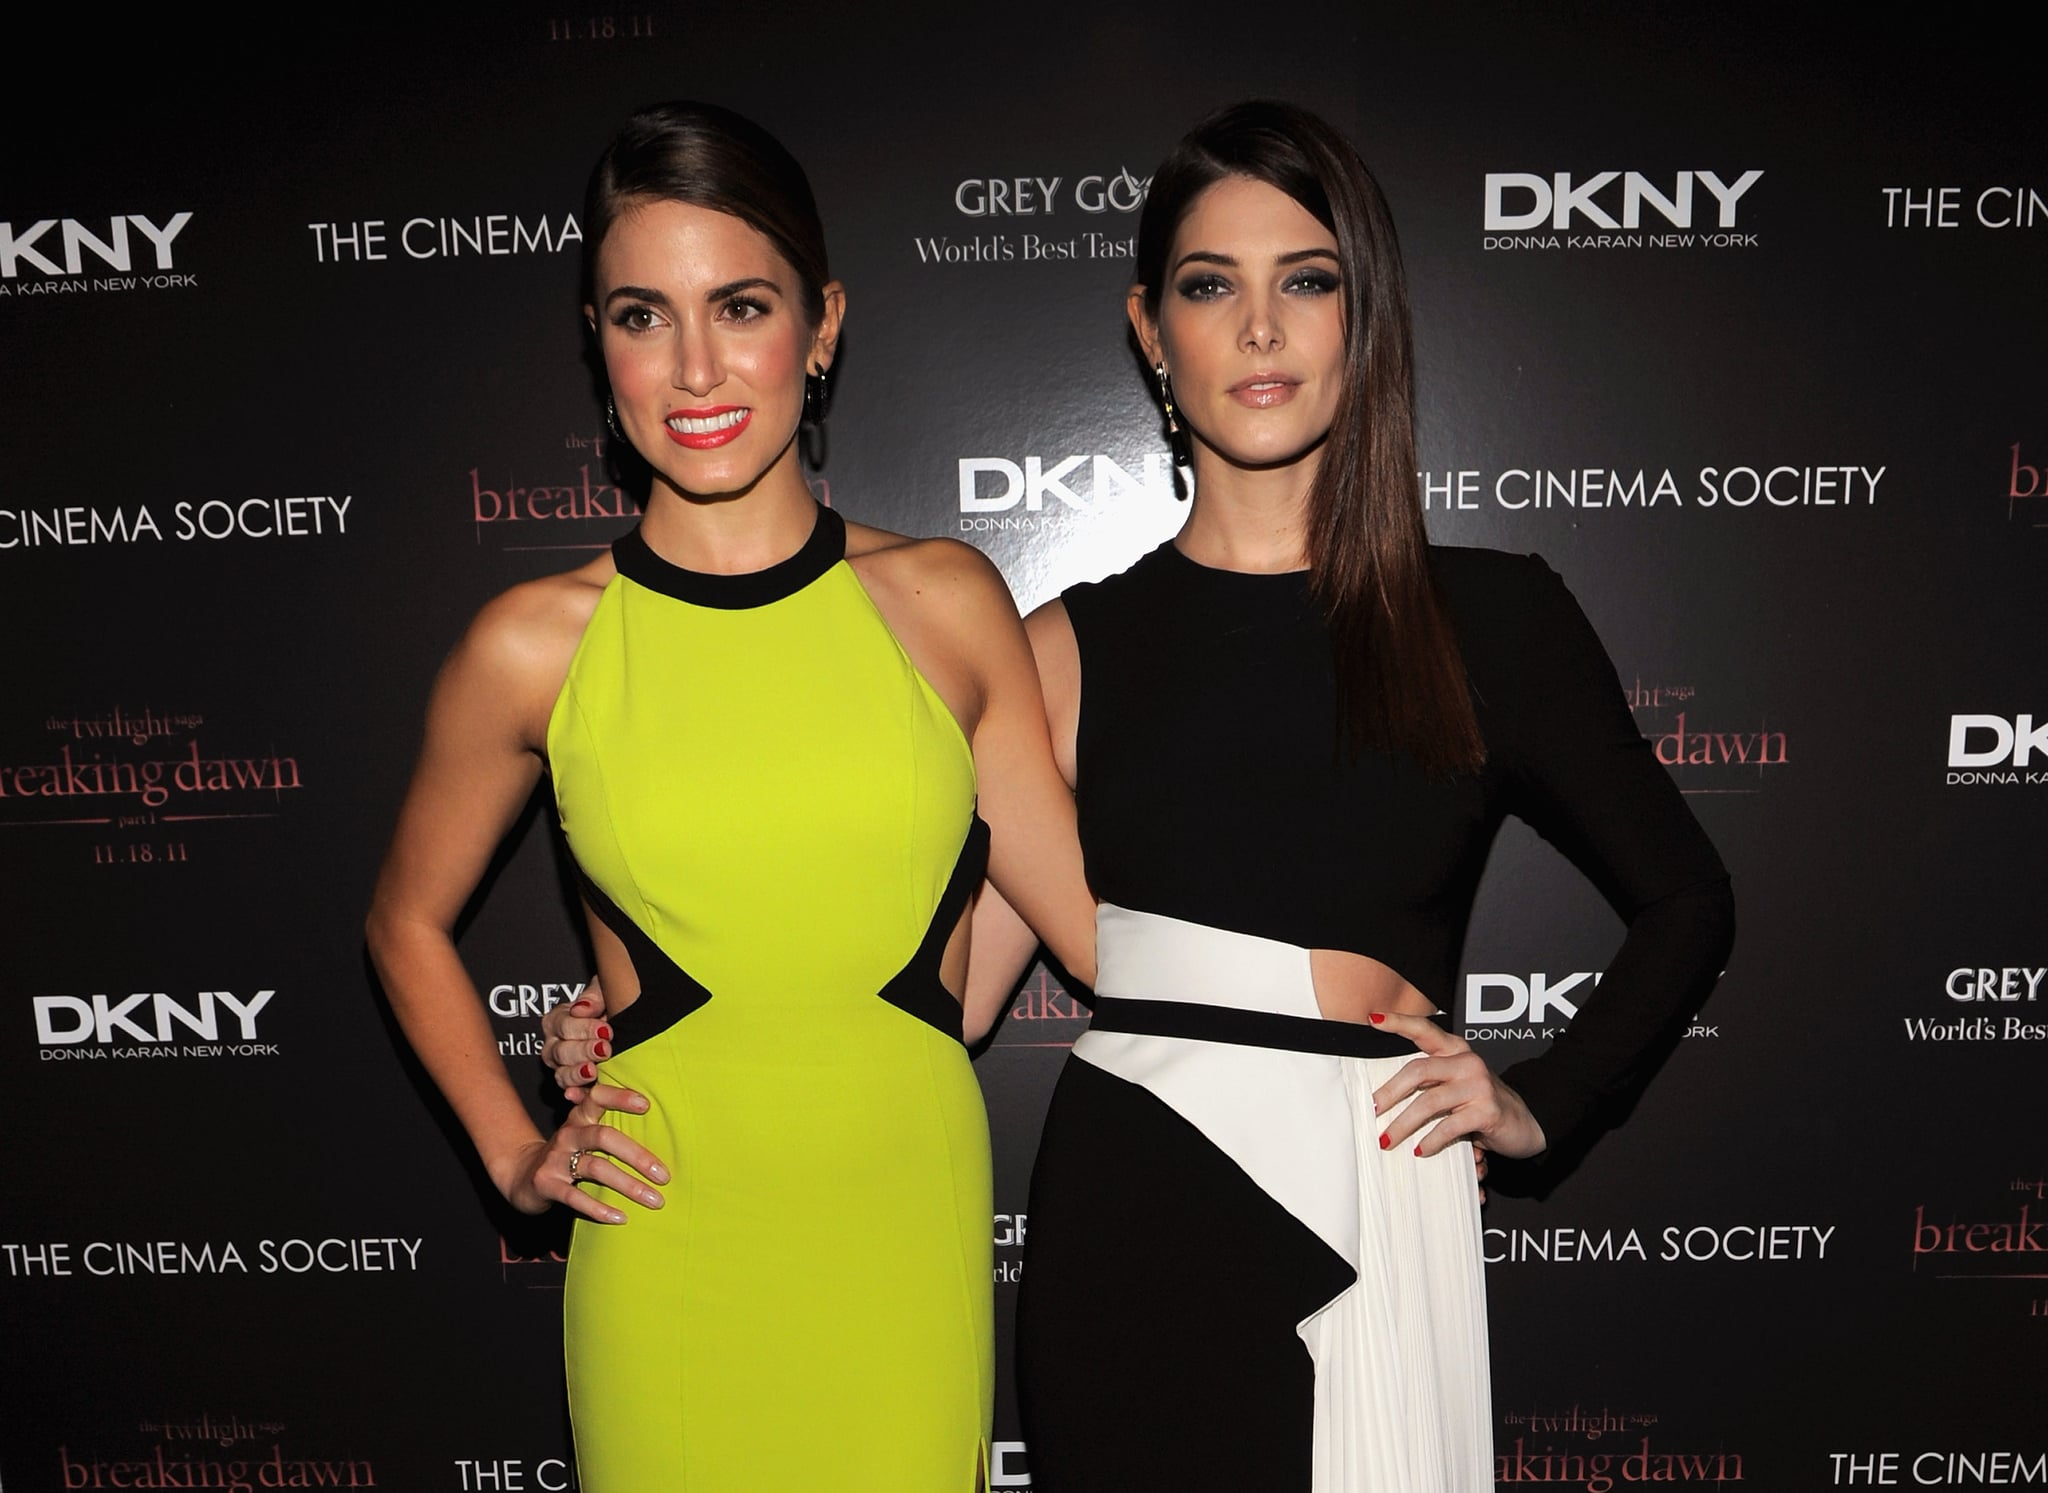 Ashley Greene and Nikki Reed looked drop-dead gorgeous in NYC.